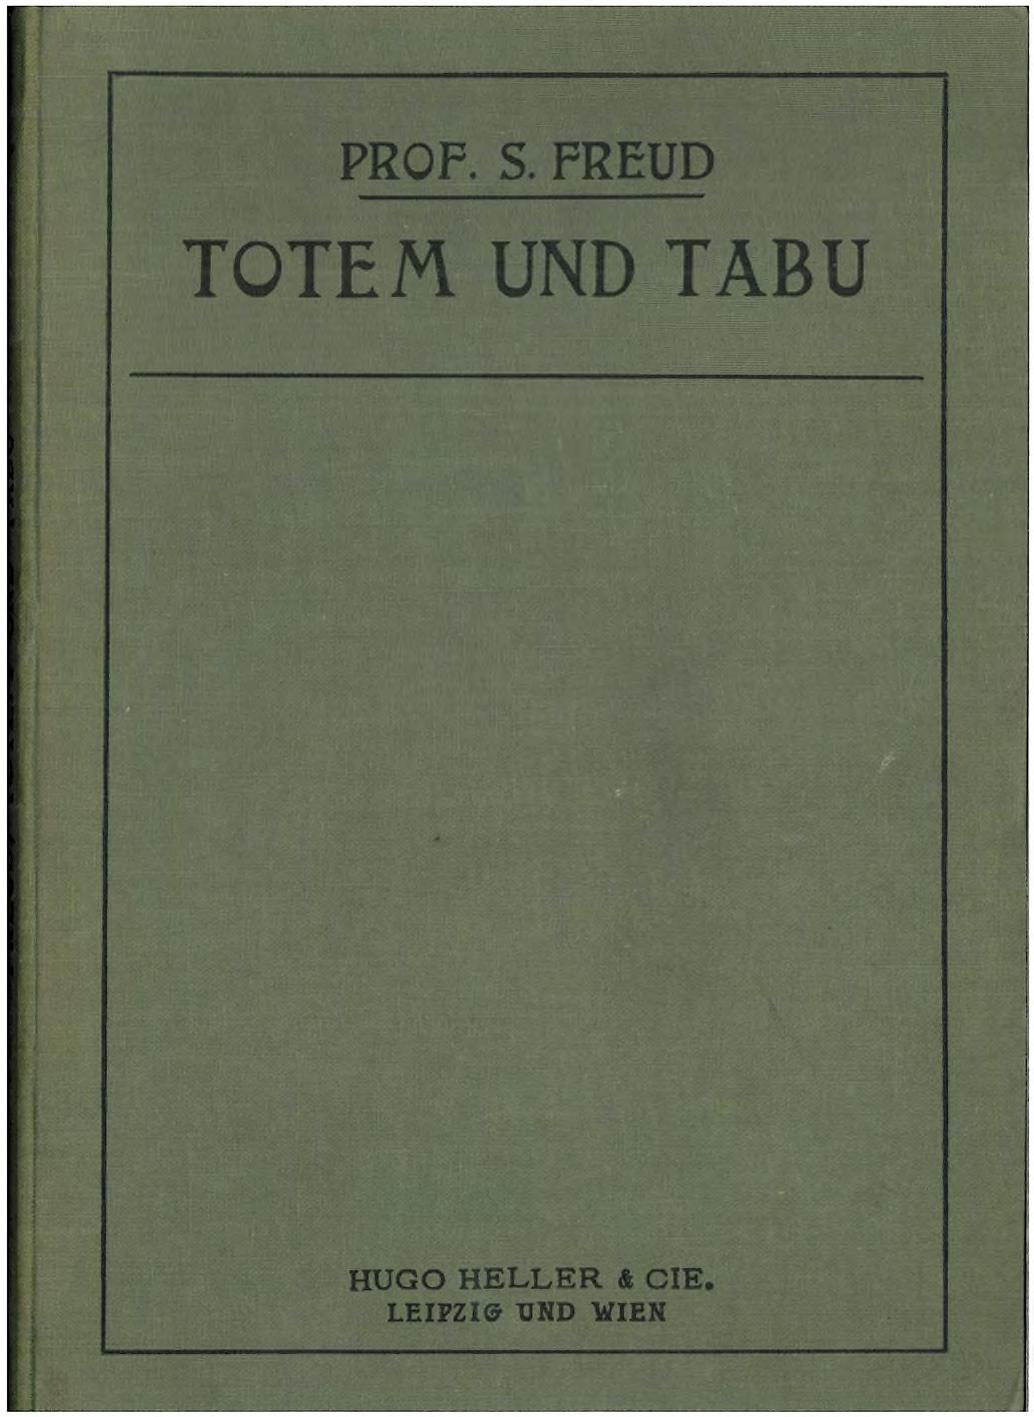 """an explanation of the origin of different religions in totem and taboo Totem and taboo /chapter iii from of the inanimate in his """"natural history of religions,"""" where are therefore of older origin than the."""